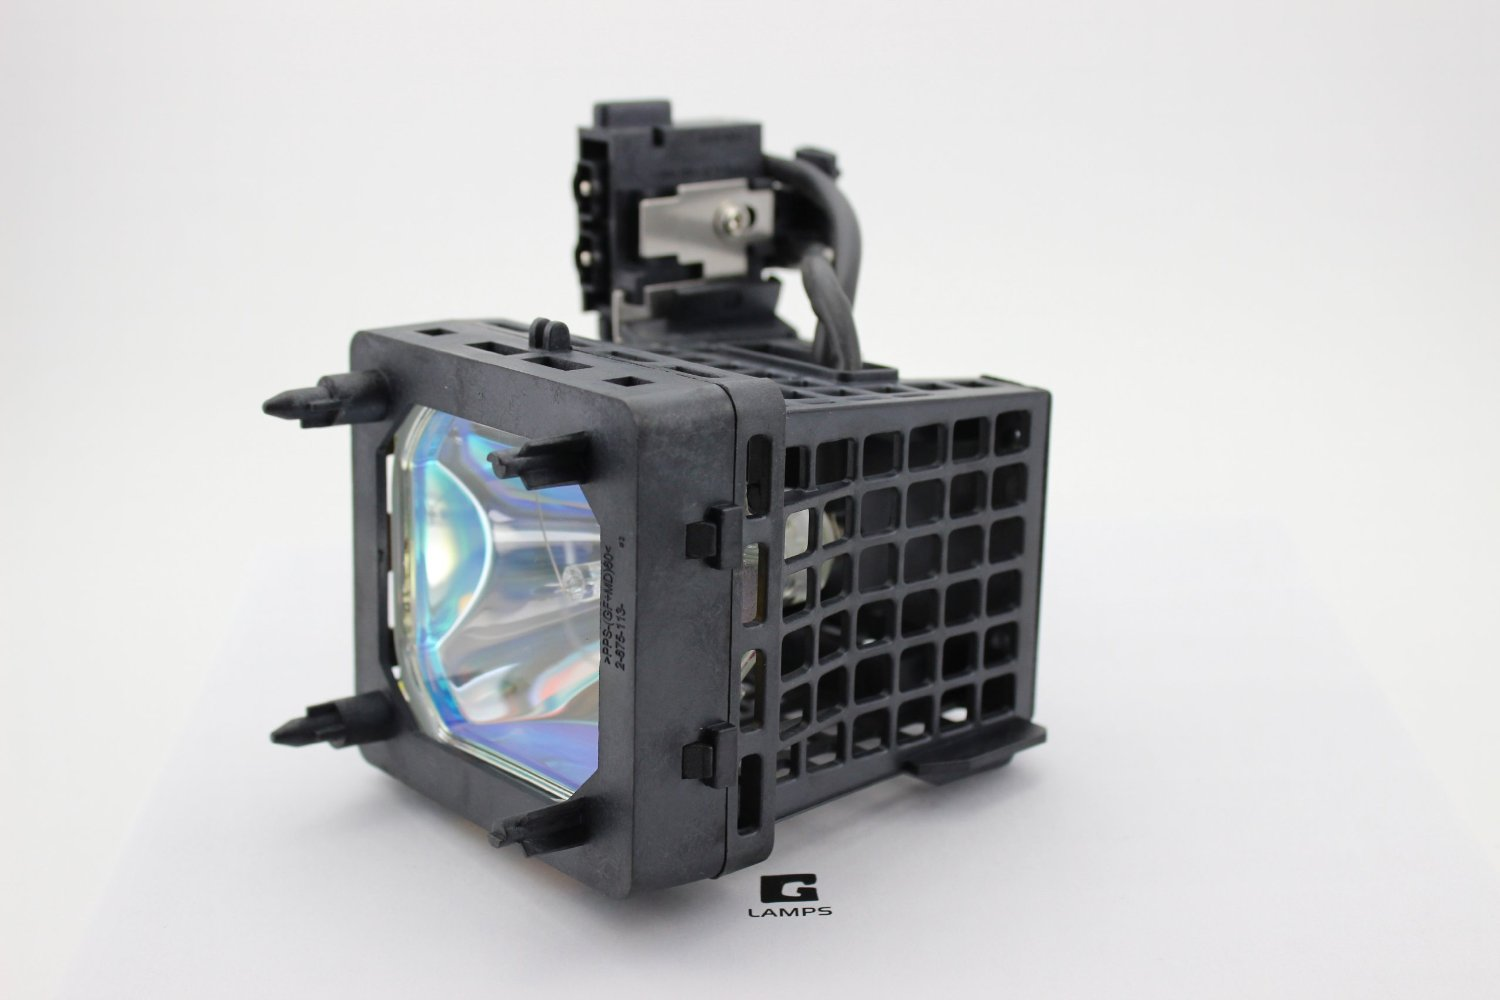 TV Lamp in Housing XL-5200 for Sony Rear Projection TV KDS-50A2000 XL5200